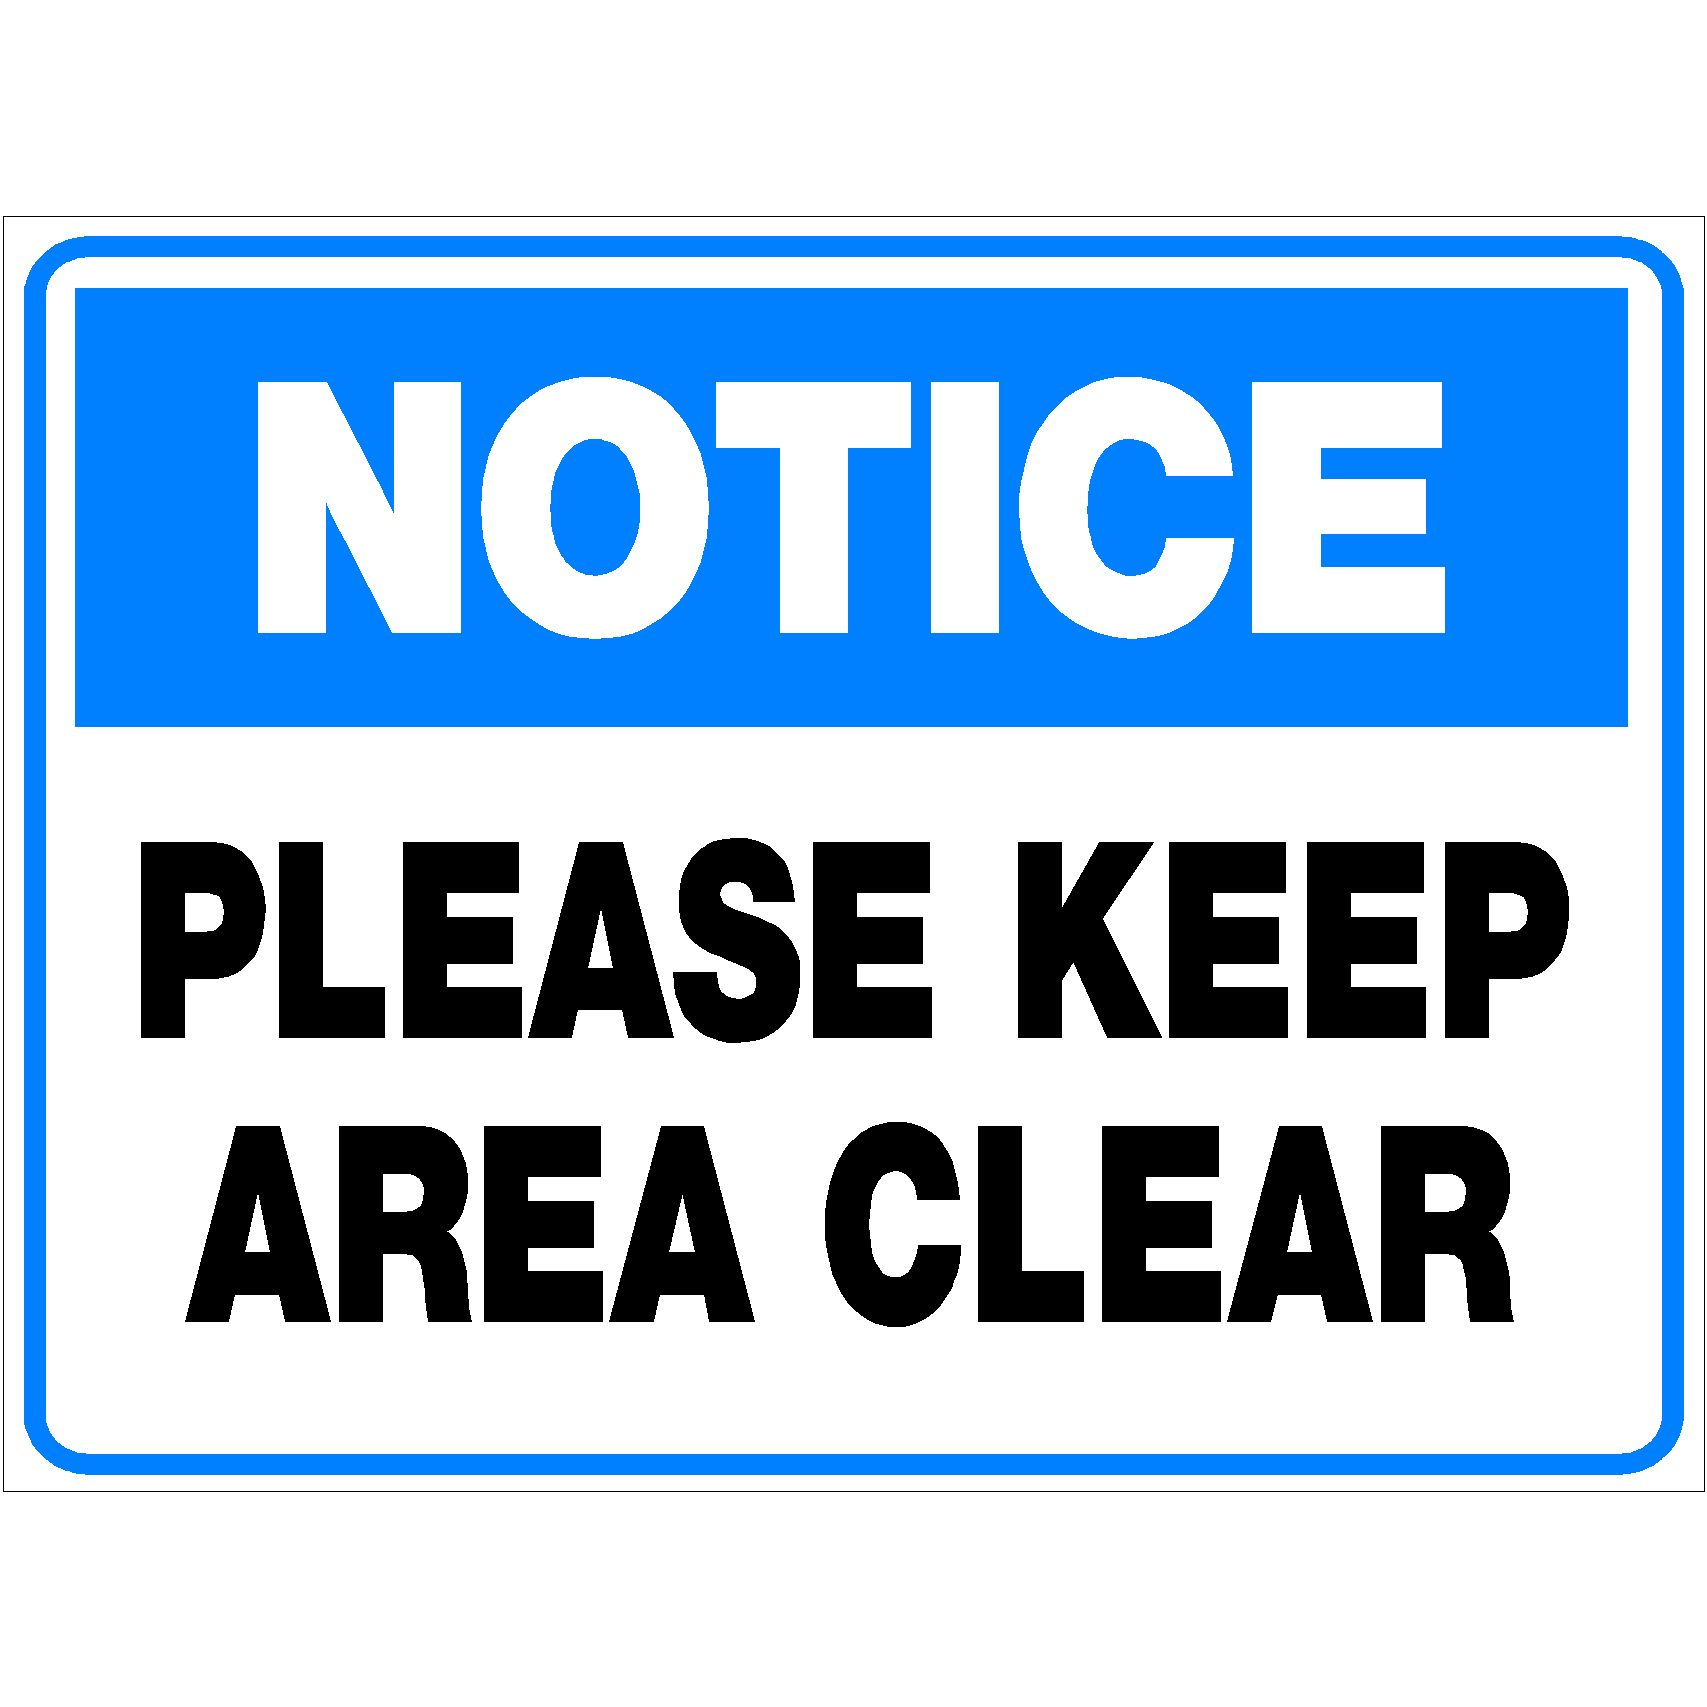 Notice Please Keep Area Clear